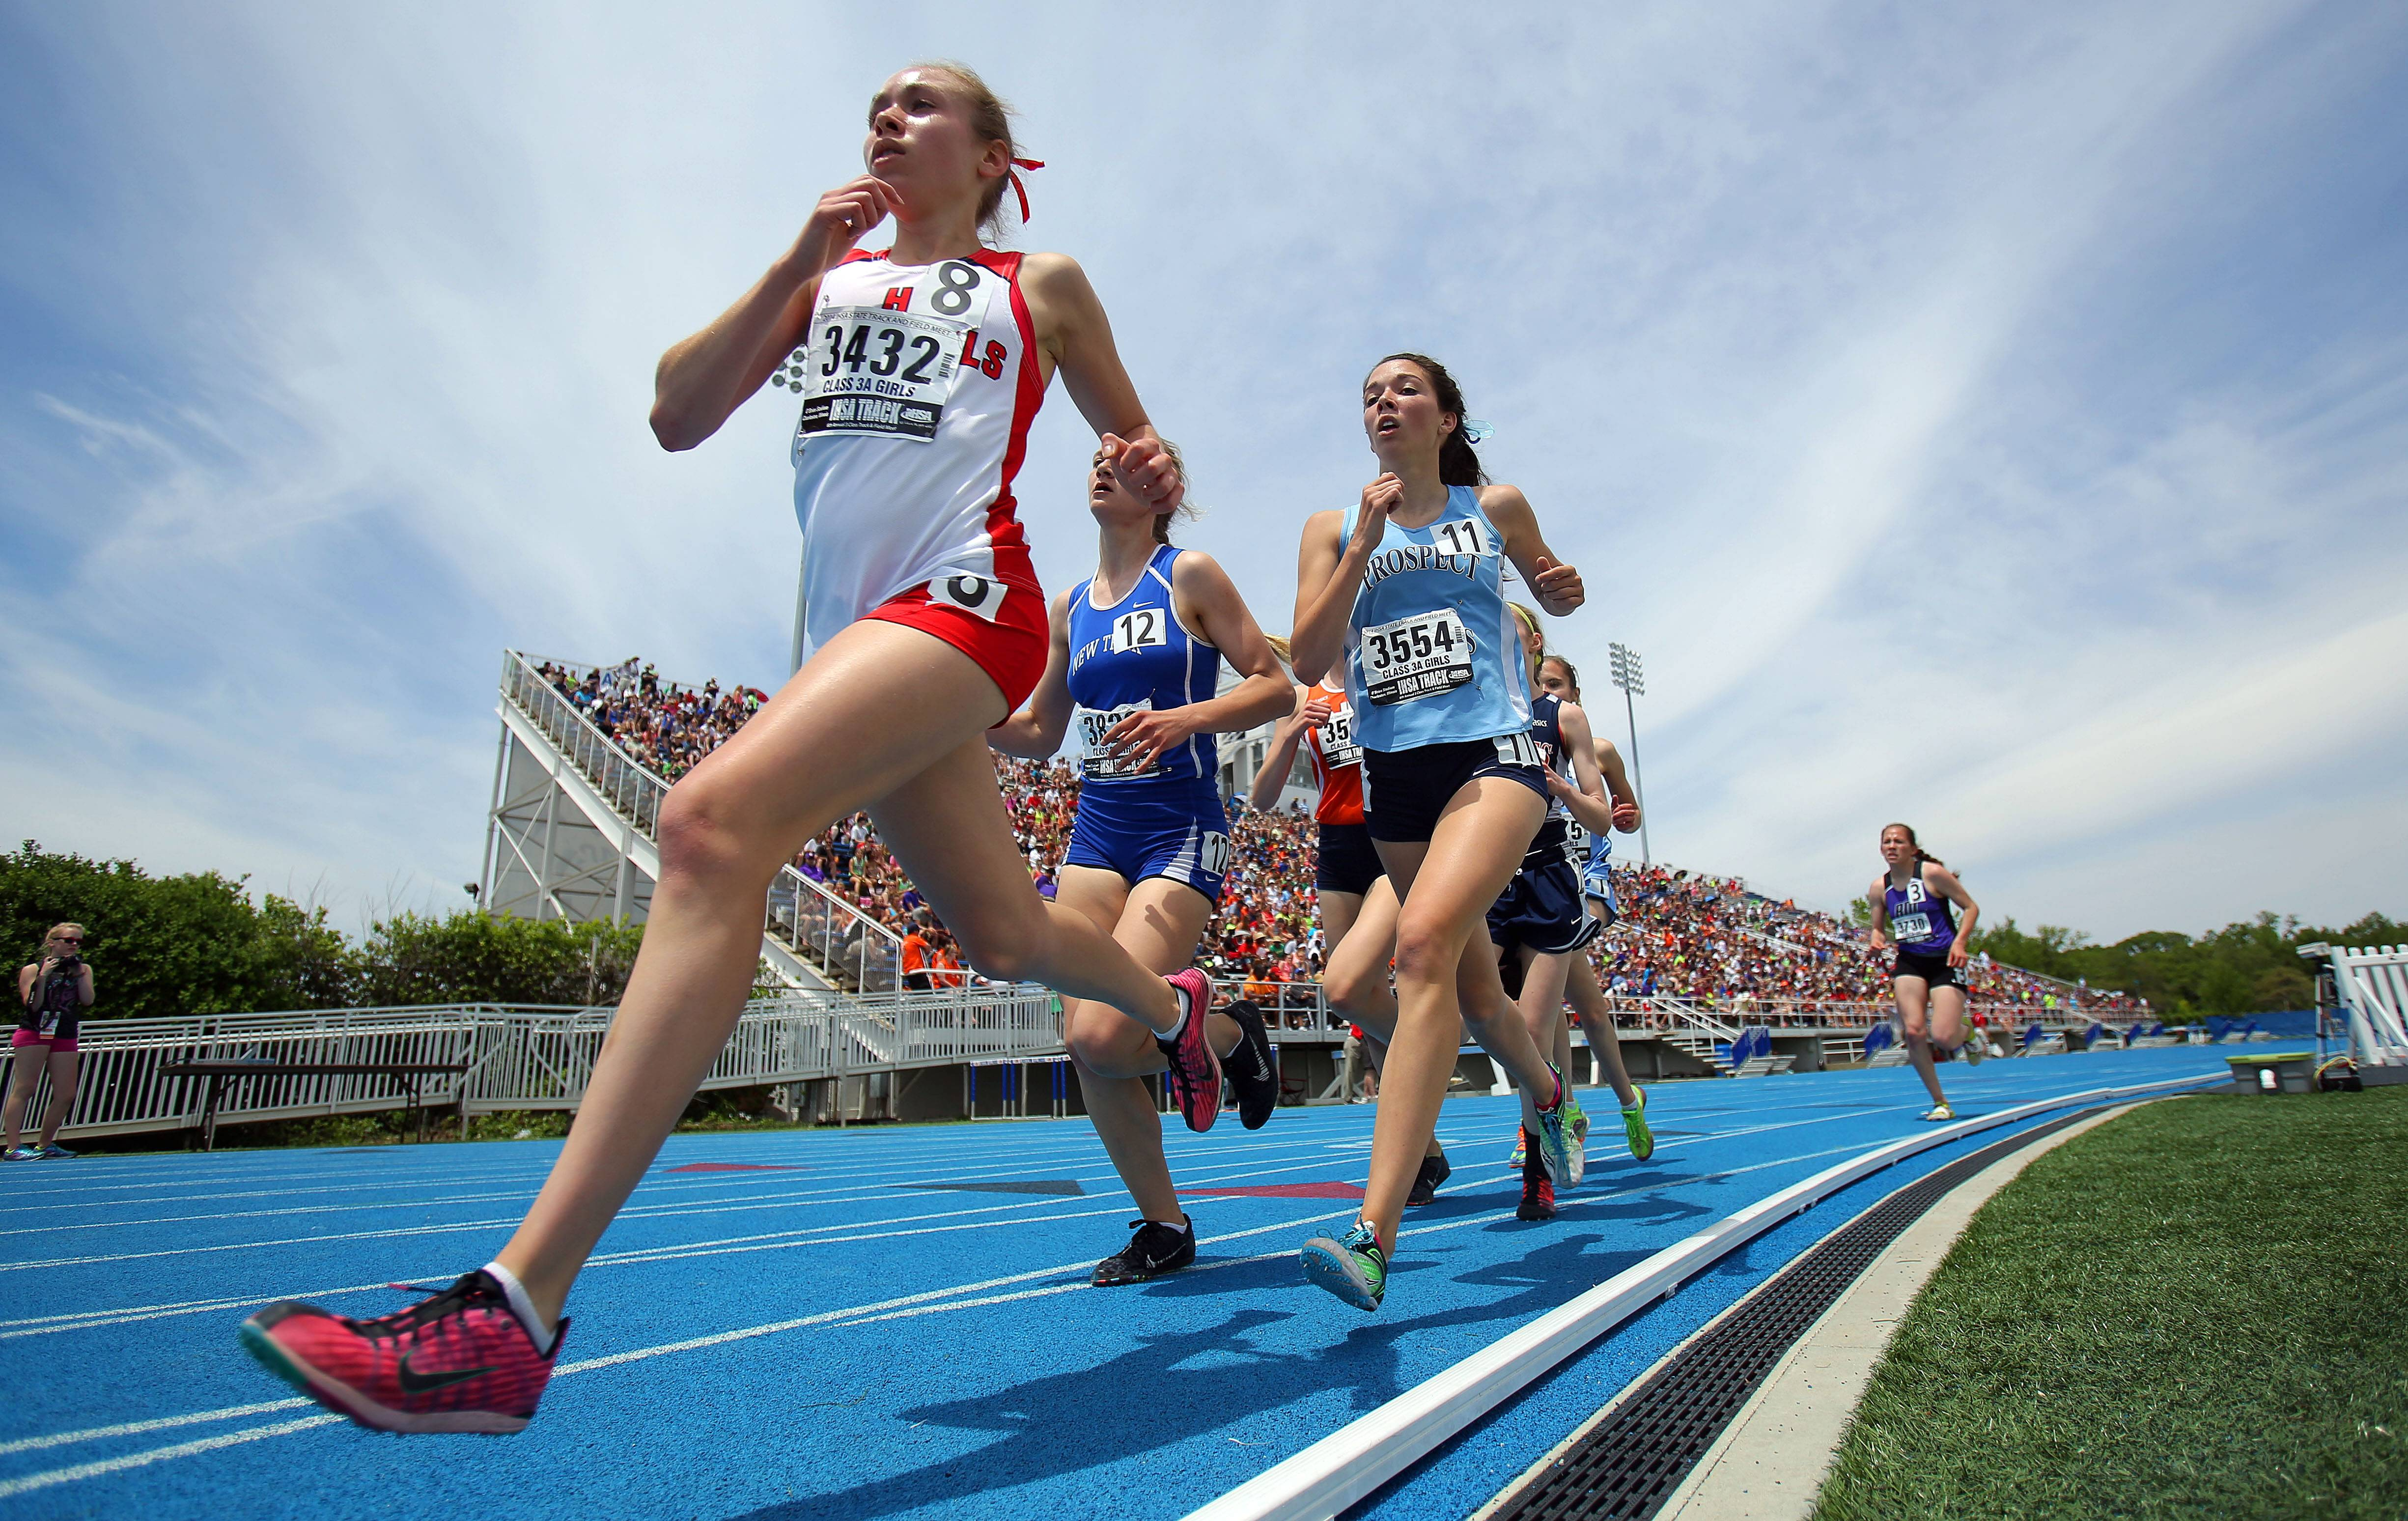 Girls compete in the class 3A 3200-meter run during the girls track and field state finals at Eastern Illinois University in Charleston Saturday.